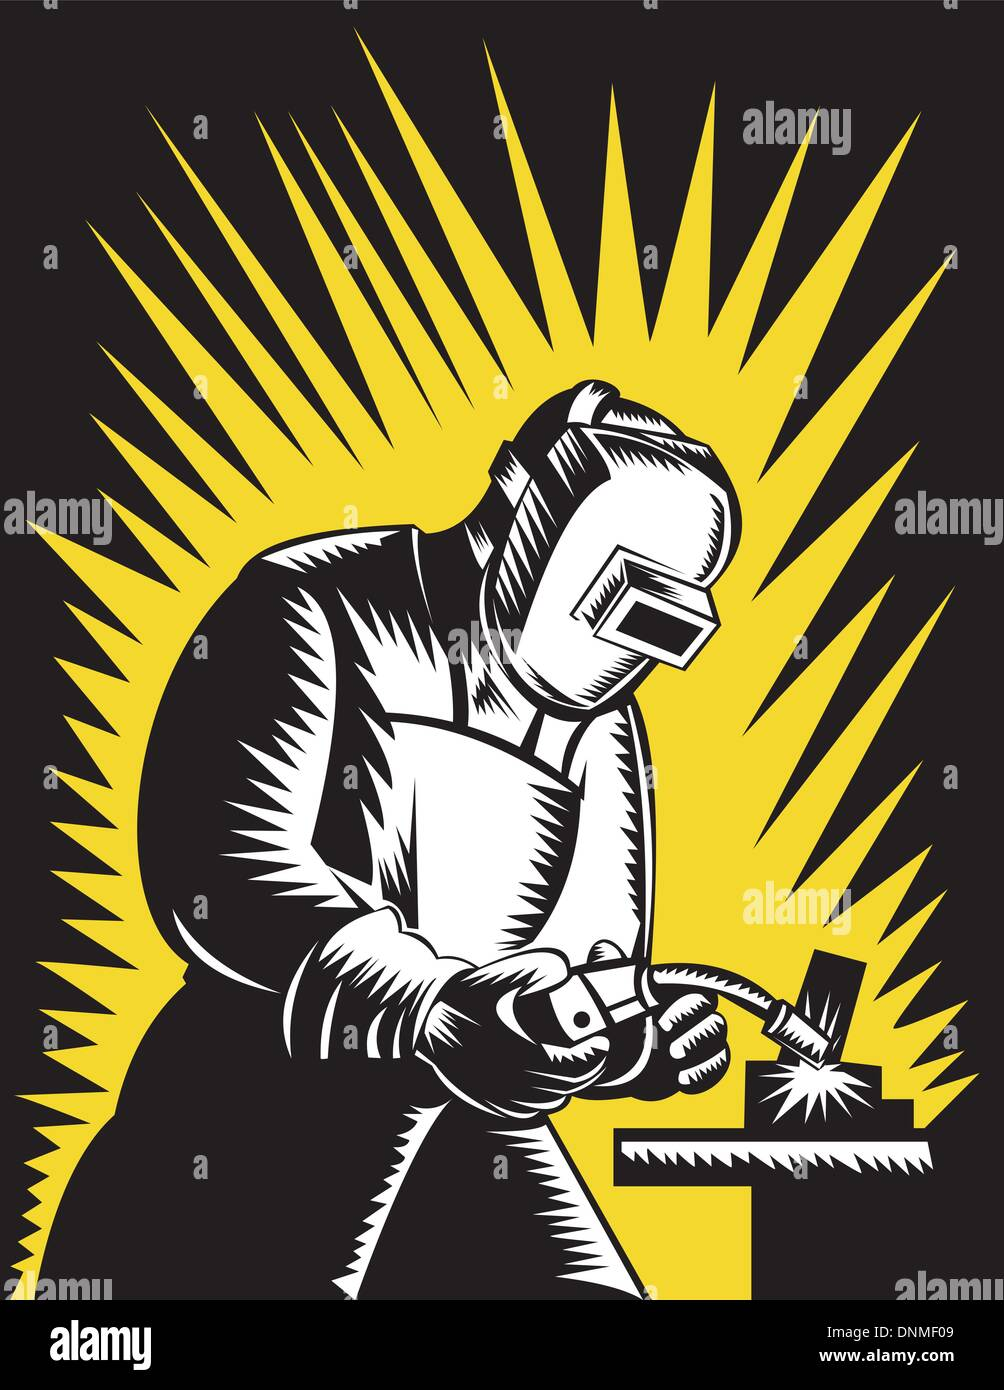 Illustration of a welder metal worker welding  with welding torch and visor done in retro woodcut style.Stock Vector